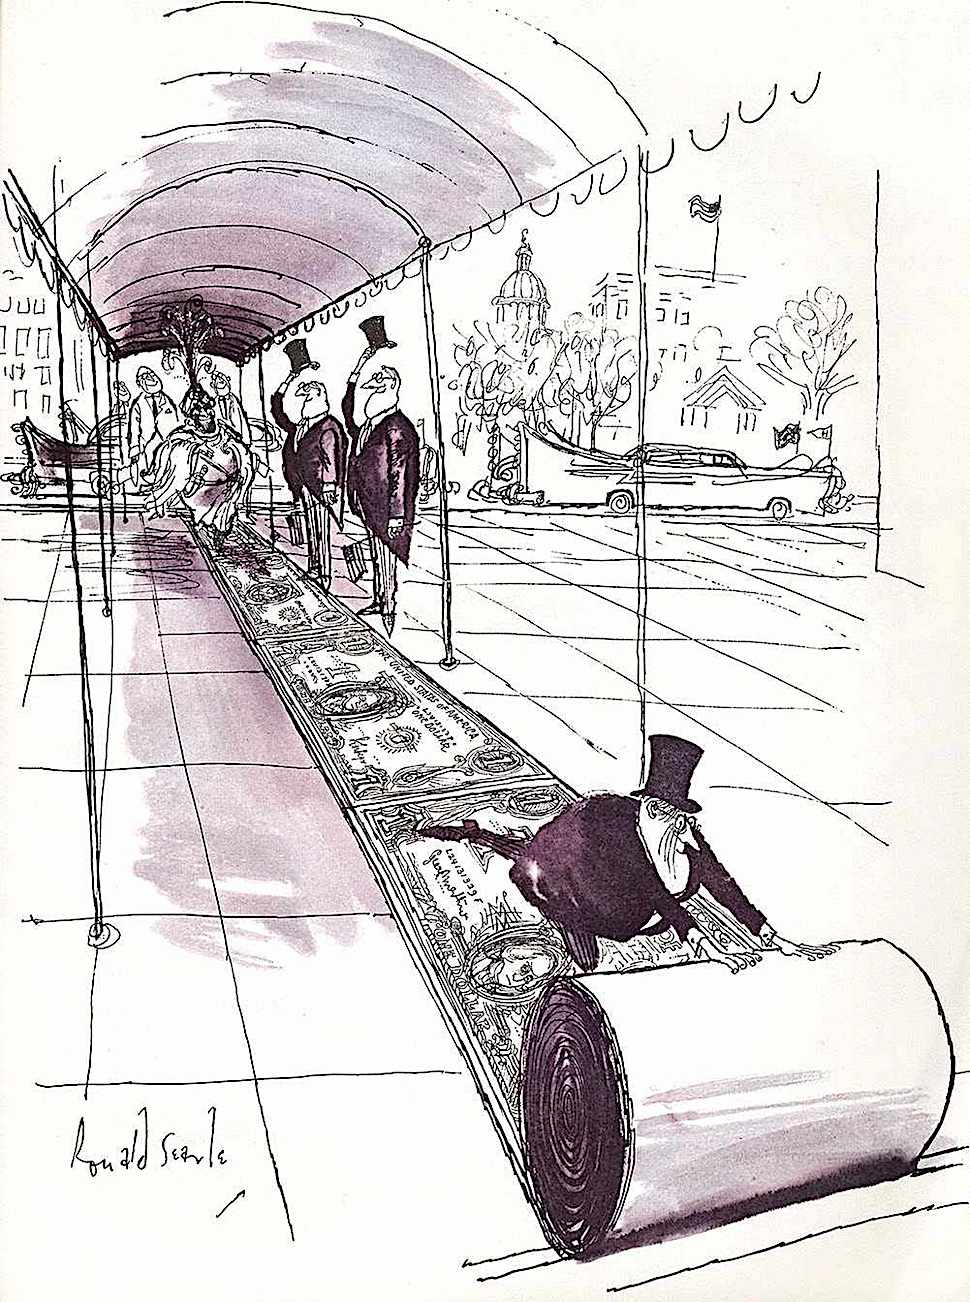 a Ronald Searle cartoon about wealth